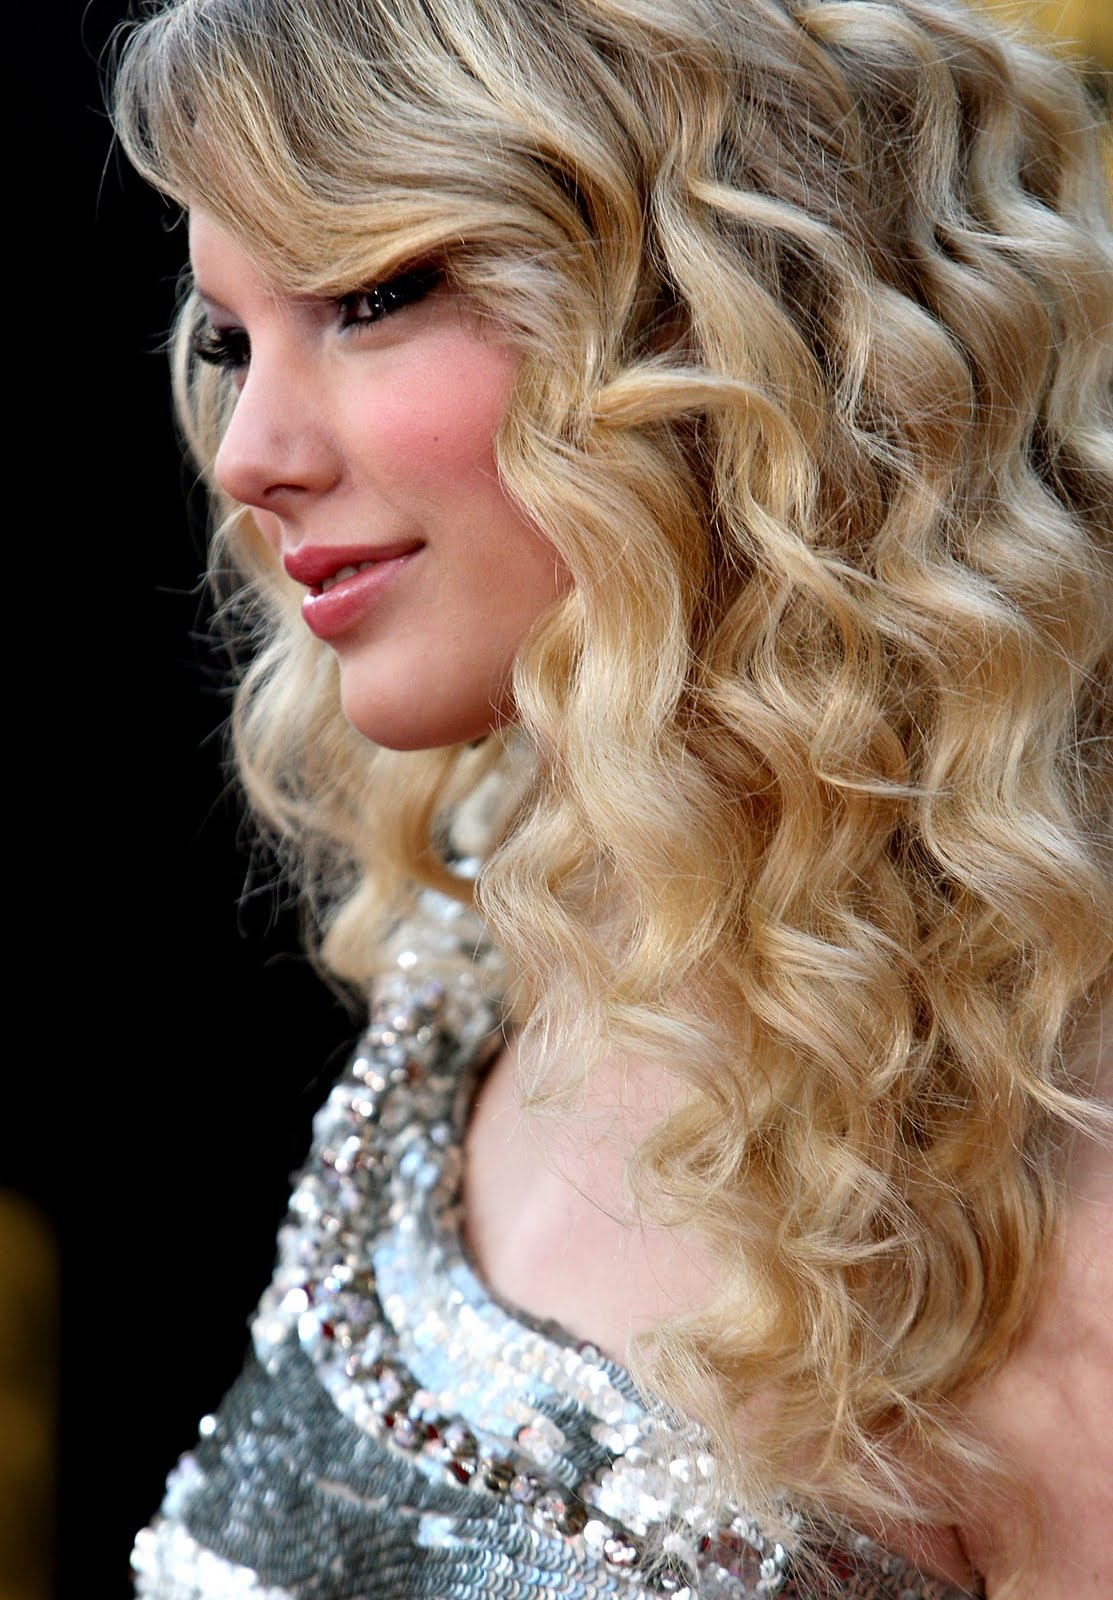 Taylor Swift Natural Hair, Long Hairstyle 2011, Hairstyle 2011, New Long Hairstyle 2011, Celebrity Long Hairstyles 2036